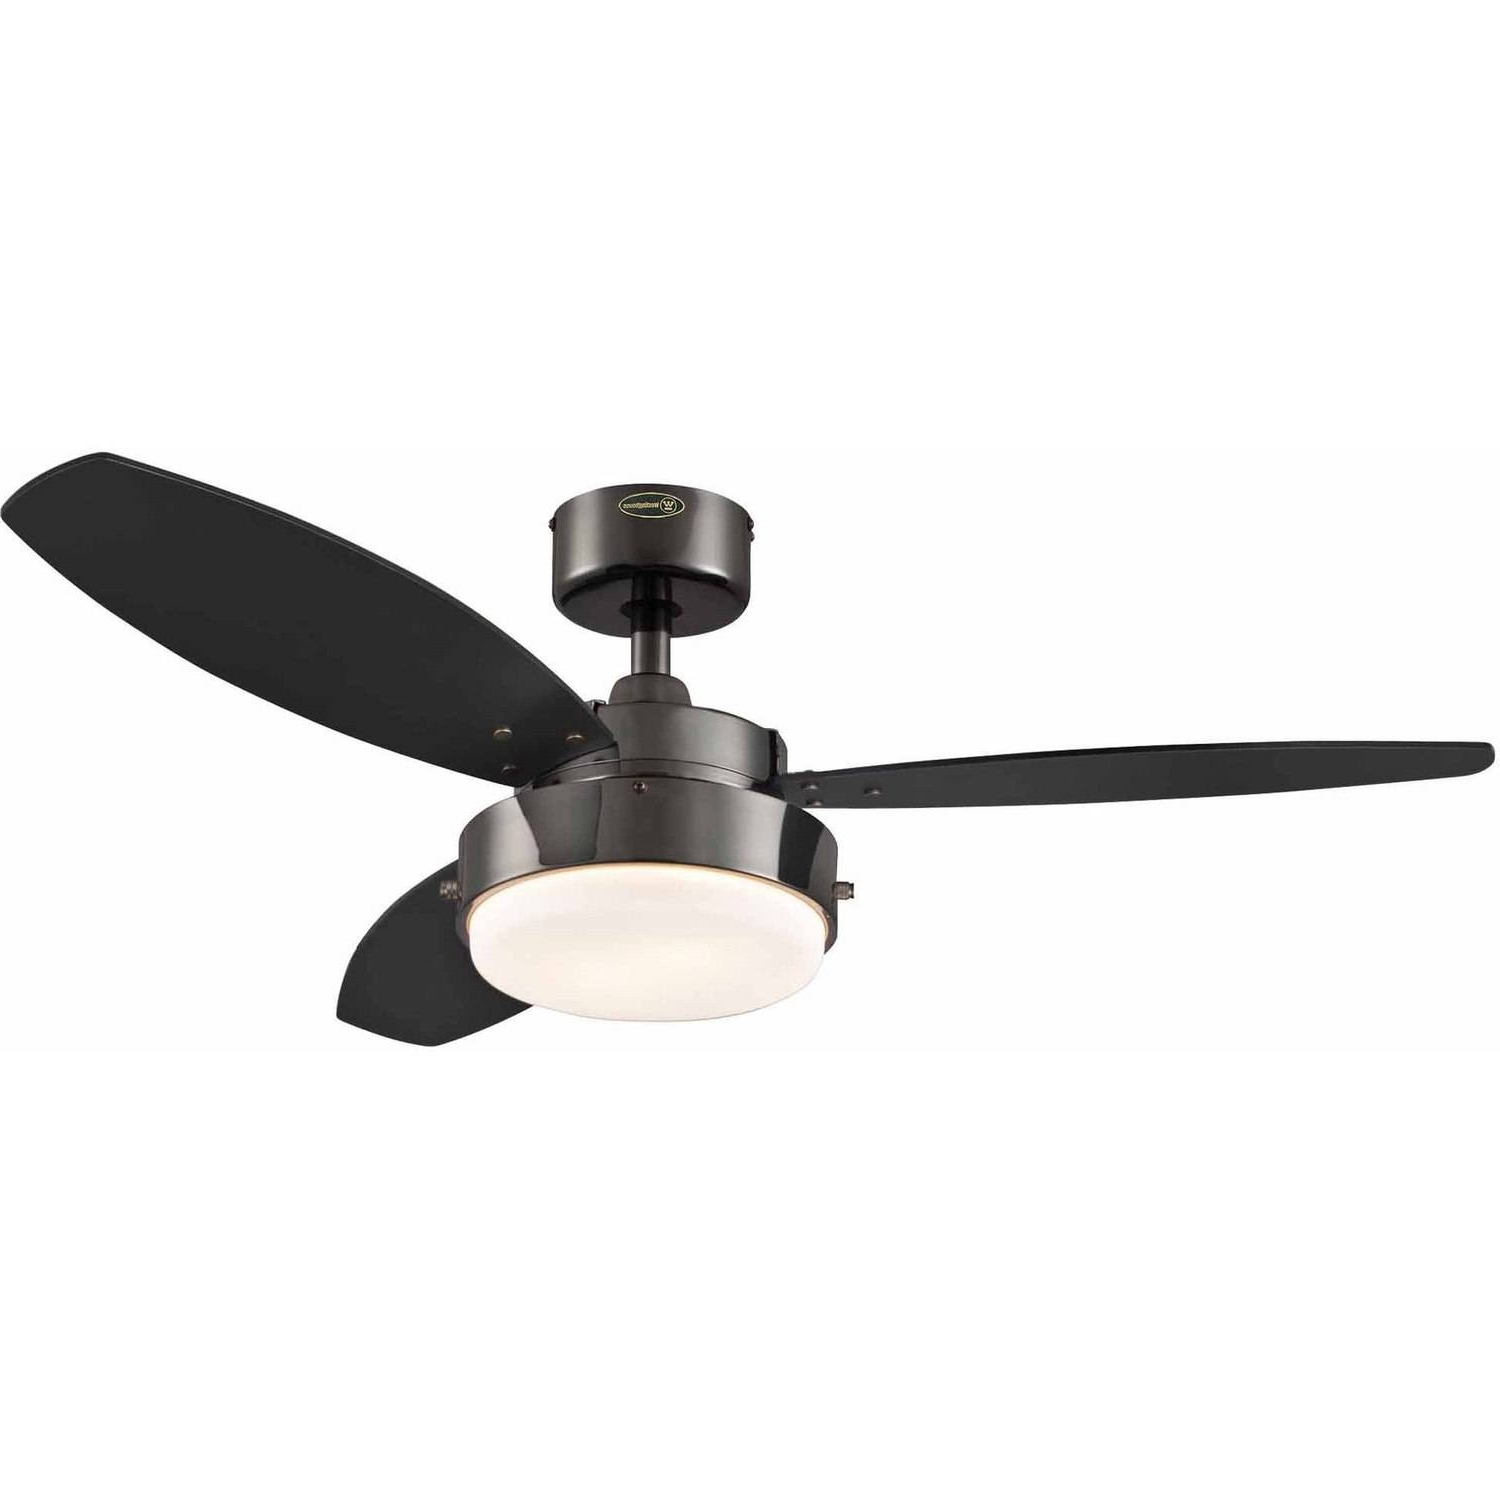 "Newest 52"" Honeywell Sunset Key Outdoor Ceiling Fan, Bronze – Walmart Inside Outdoor Ceiling Fans With Remote Control Lights (View 16 of 20)"